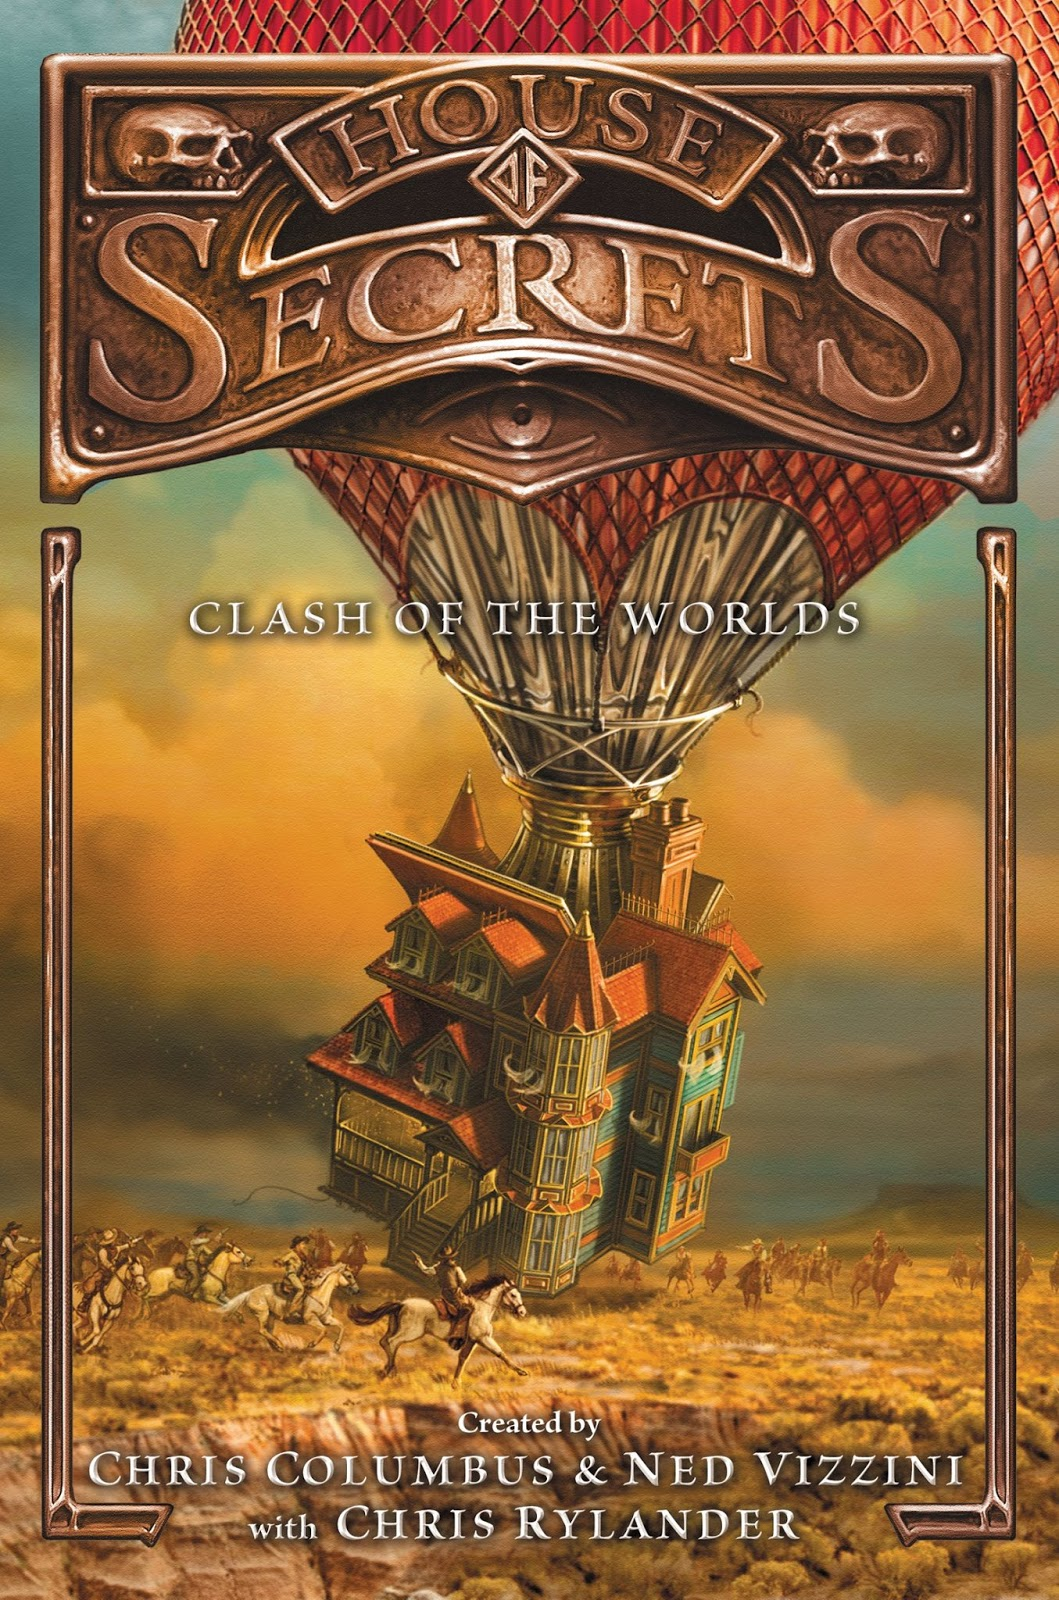 House of Secrets: Clash of the Worlds by Chris Columbus, Ned Vizzini and Chris Rylander